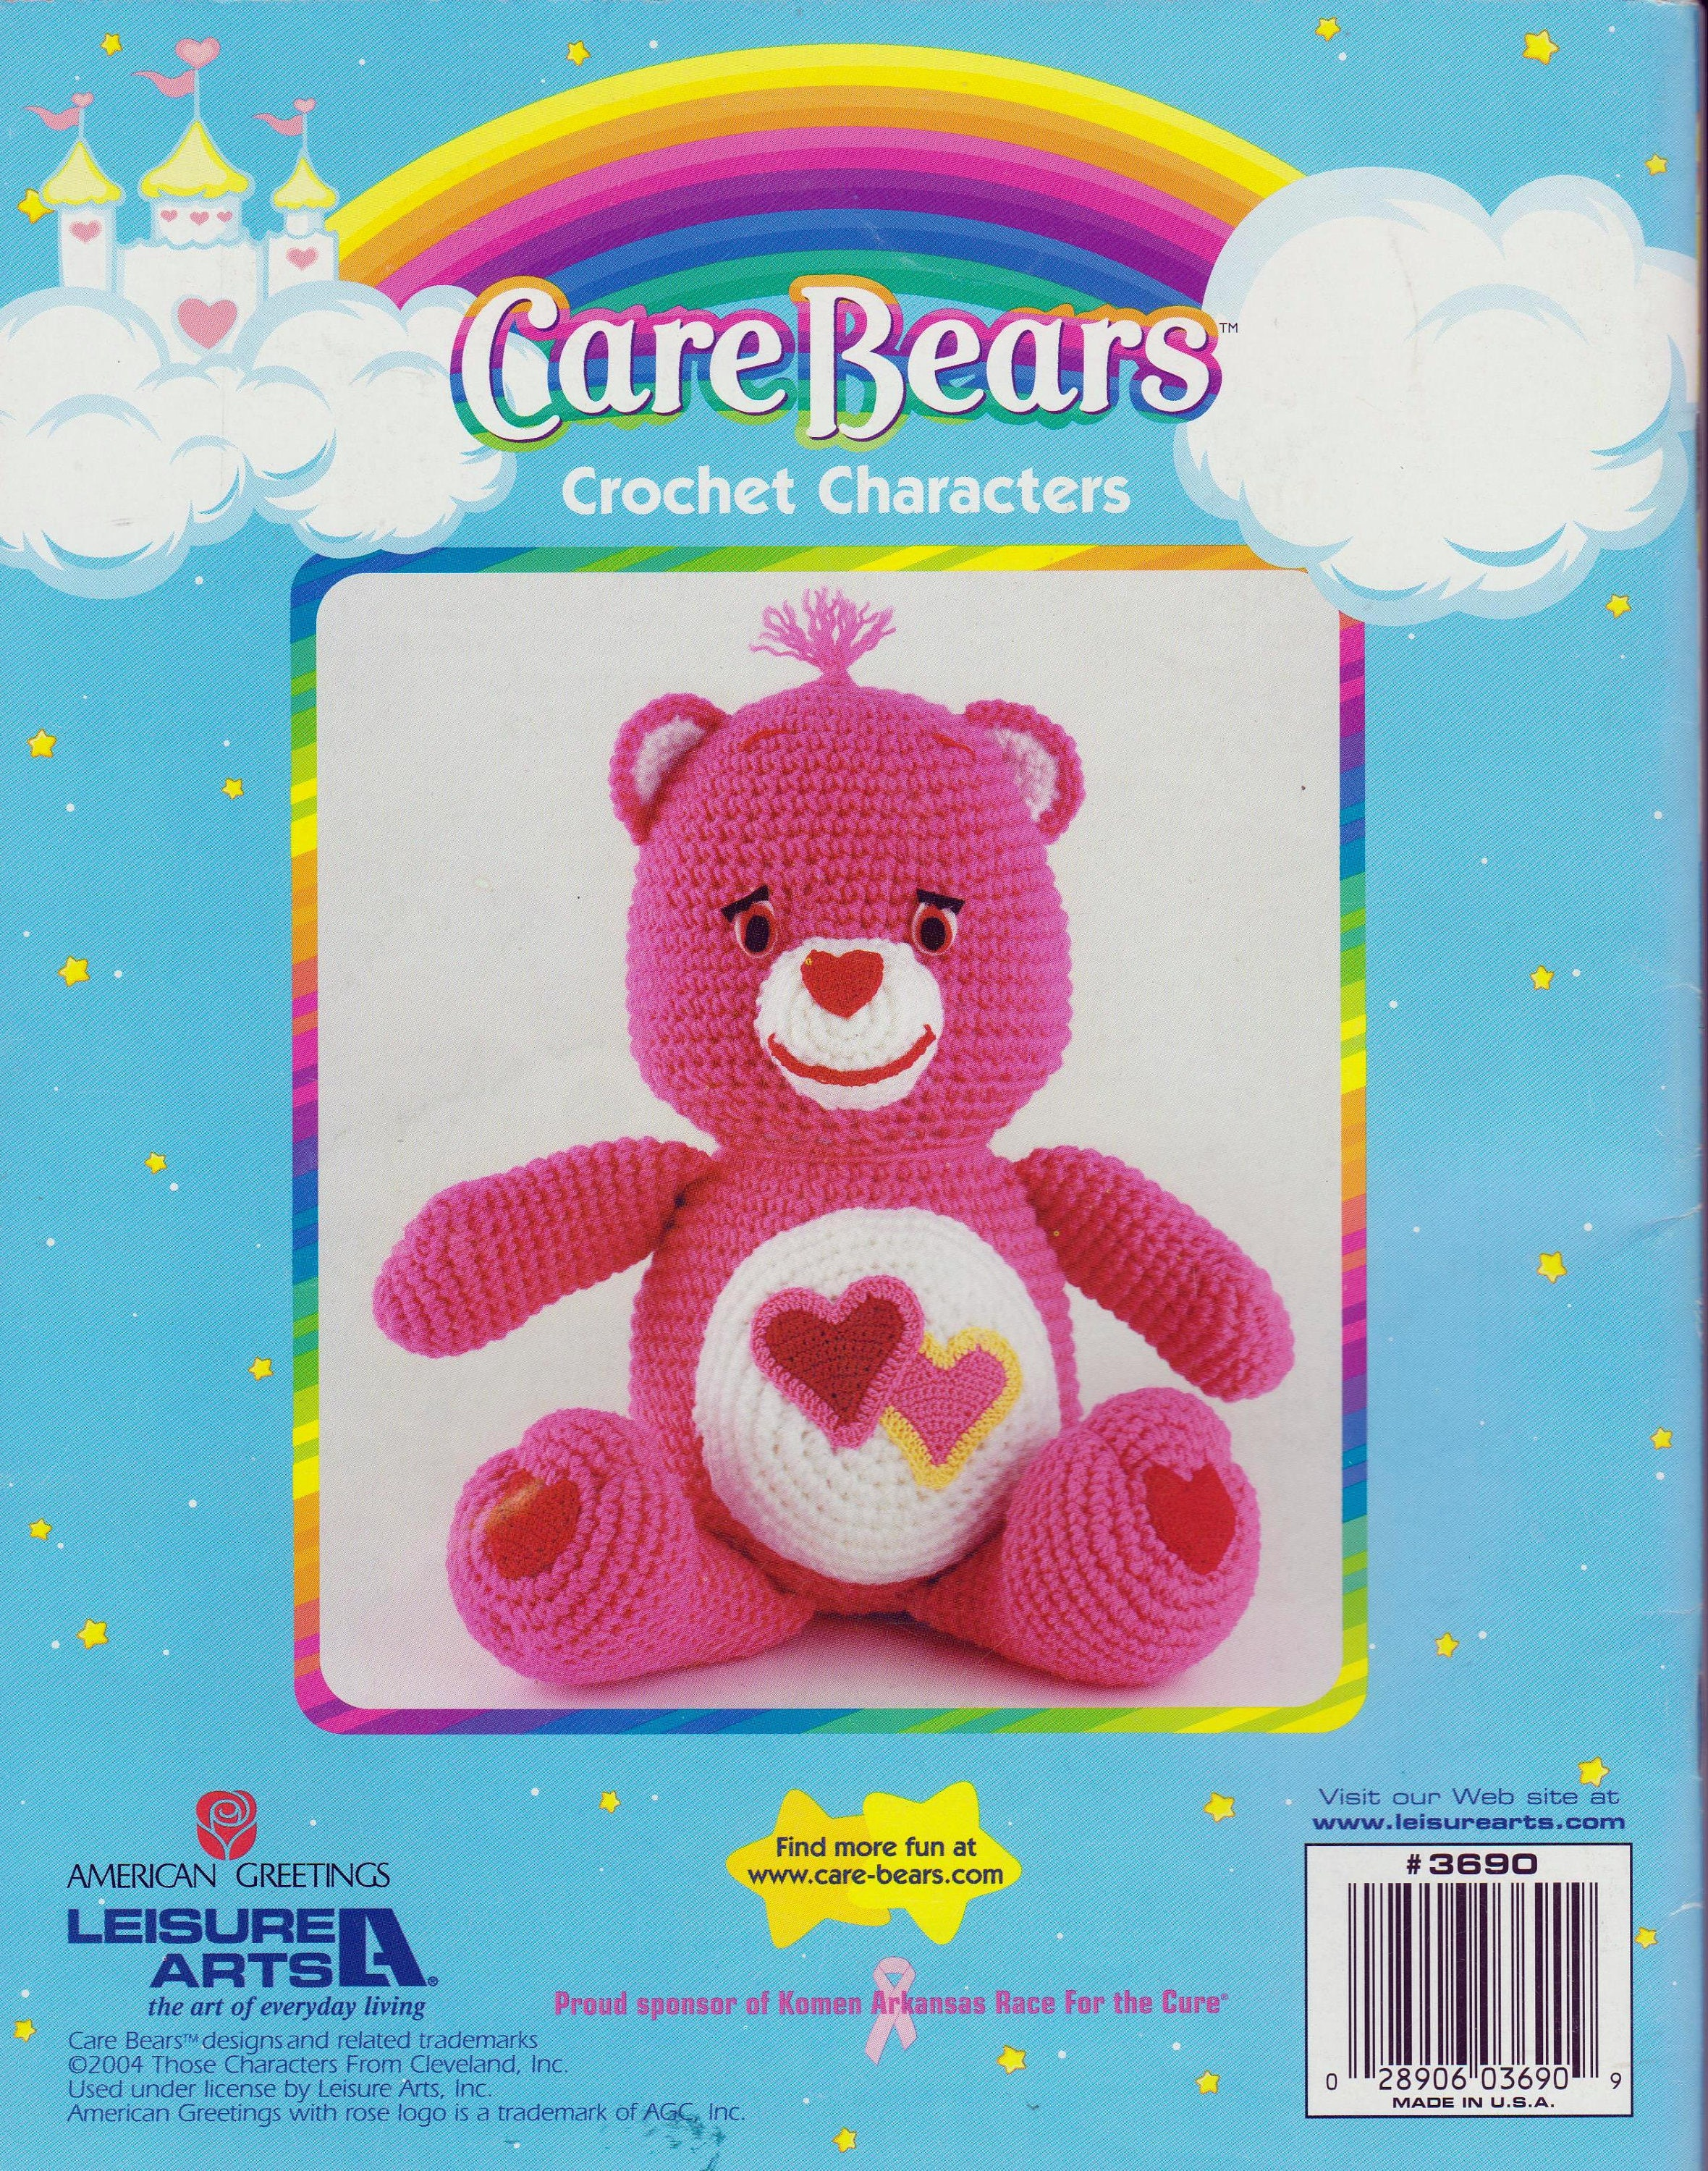 Care bears crochet characters craft patterns instruction book 10 sold by thecollectivemind bankloansurffo Choice Image